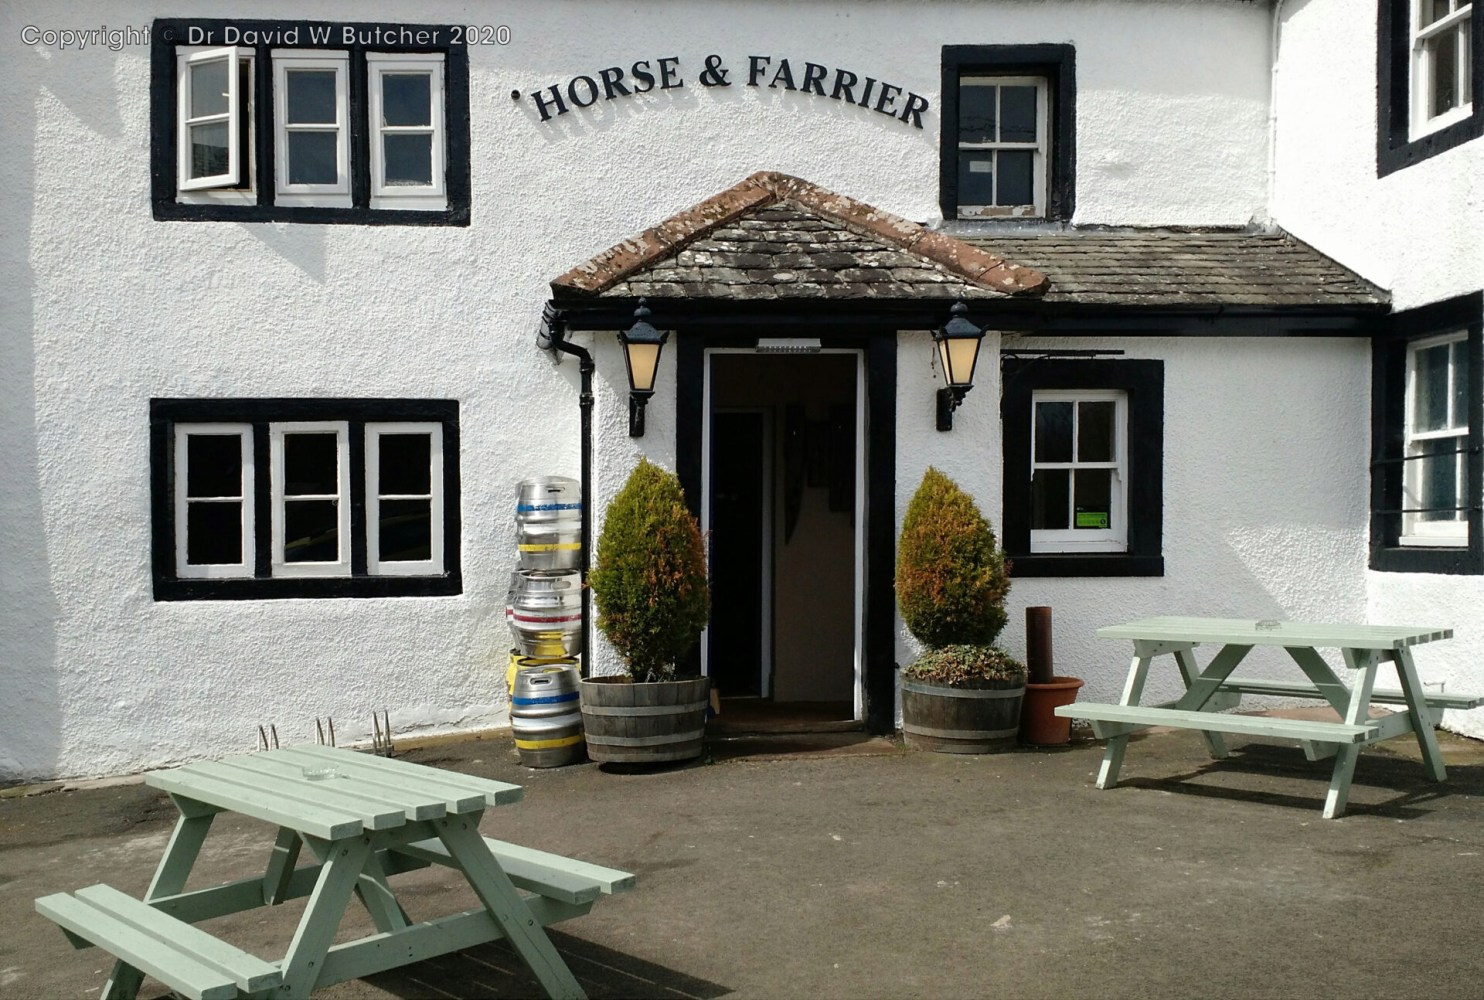 Dacre Horse and Farrier, near Pooley Bridge, Lake District